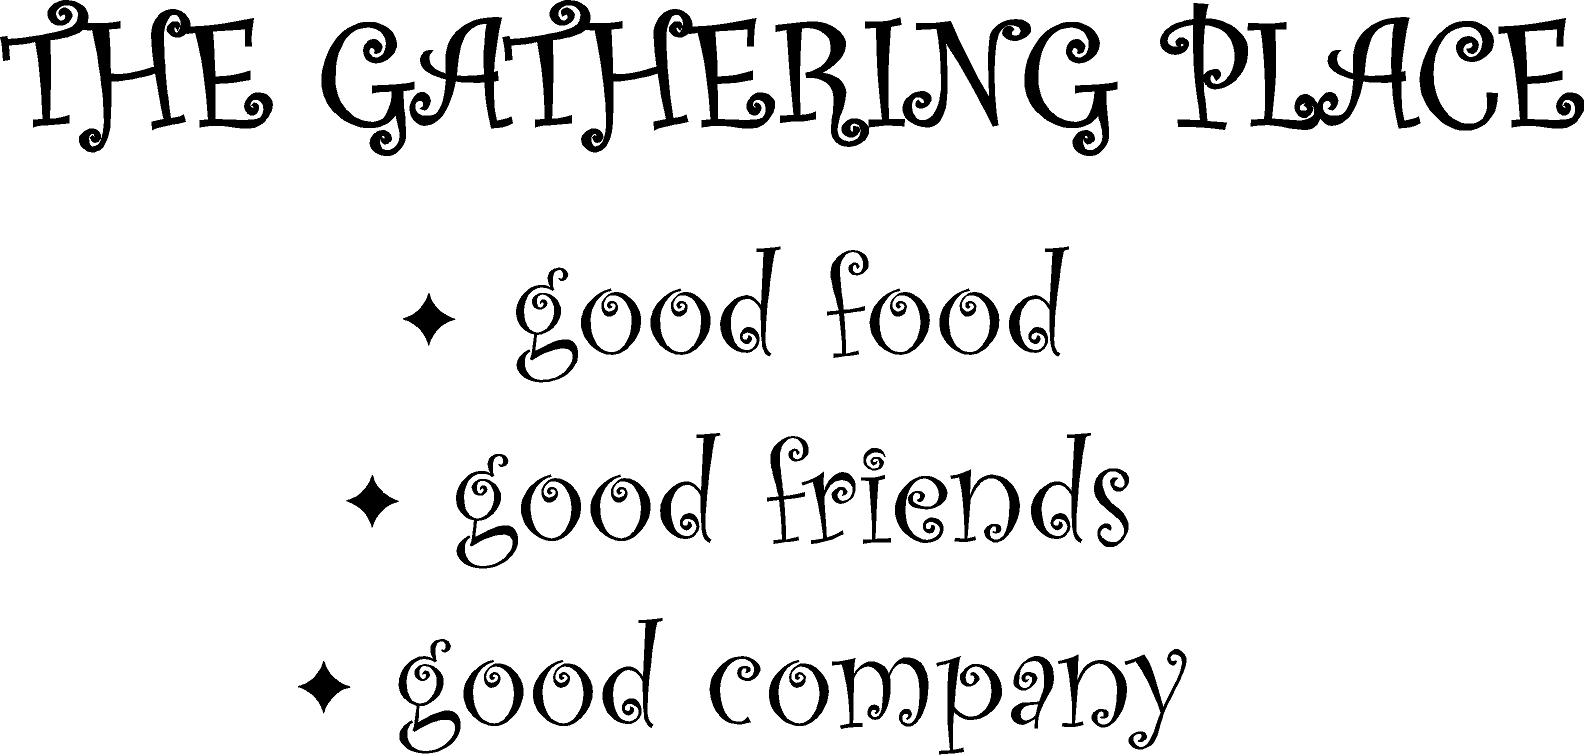 Quotes About Food And Friendship Quotes About Friendship And Good Company 13 Quotes